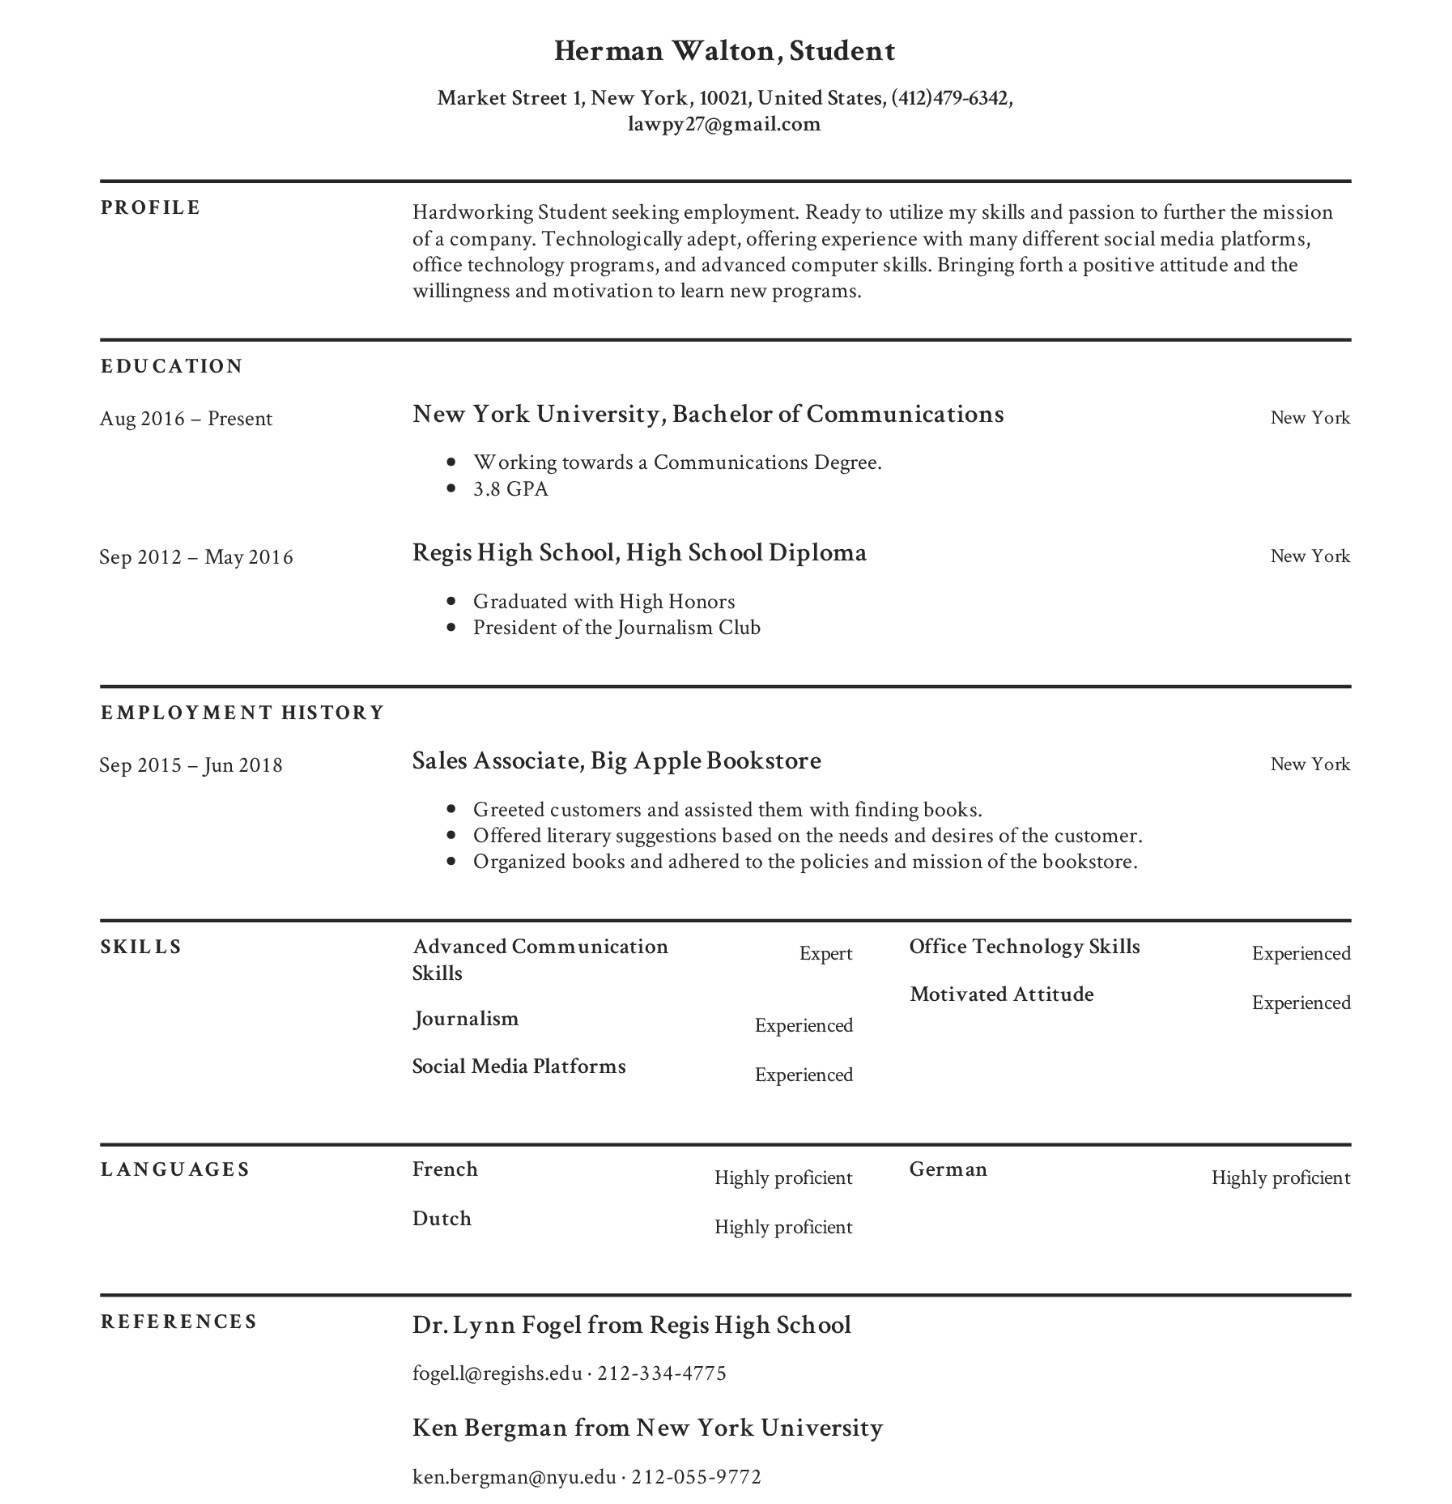 How To Build A Student Resume With Examples